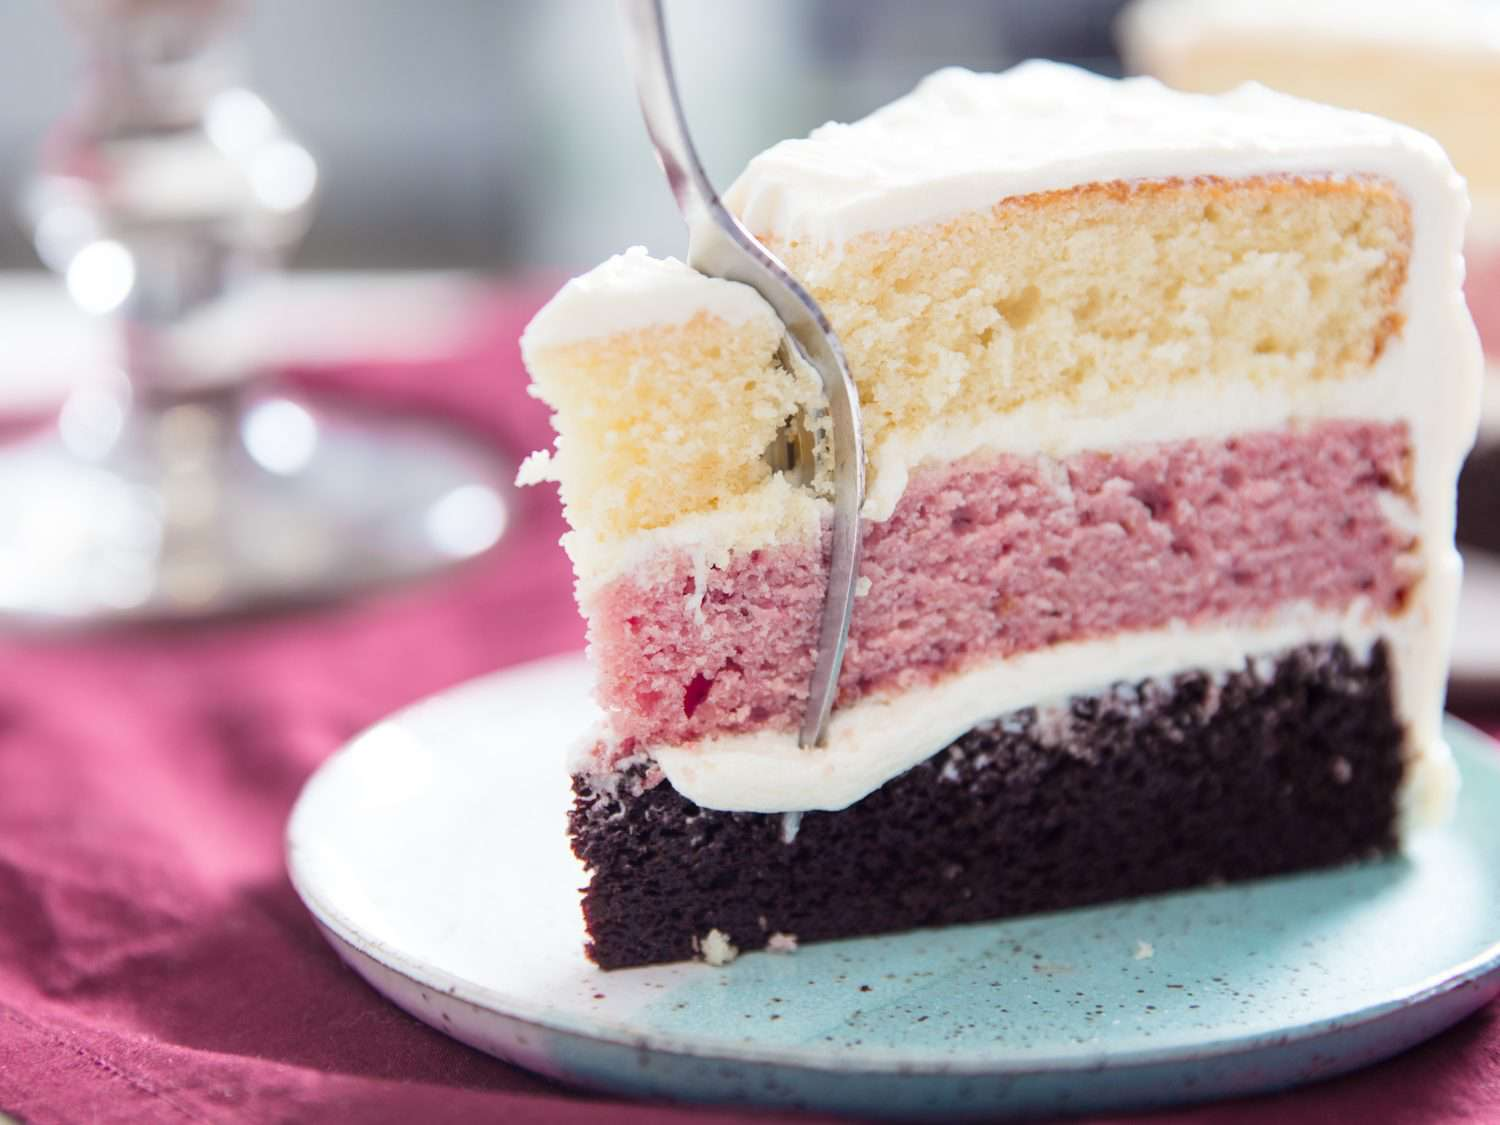 slice of Neapolitan layer cake with a fork